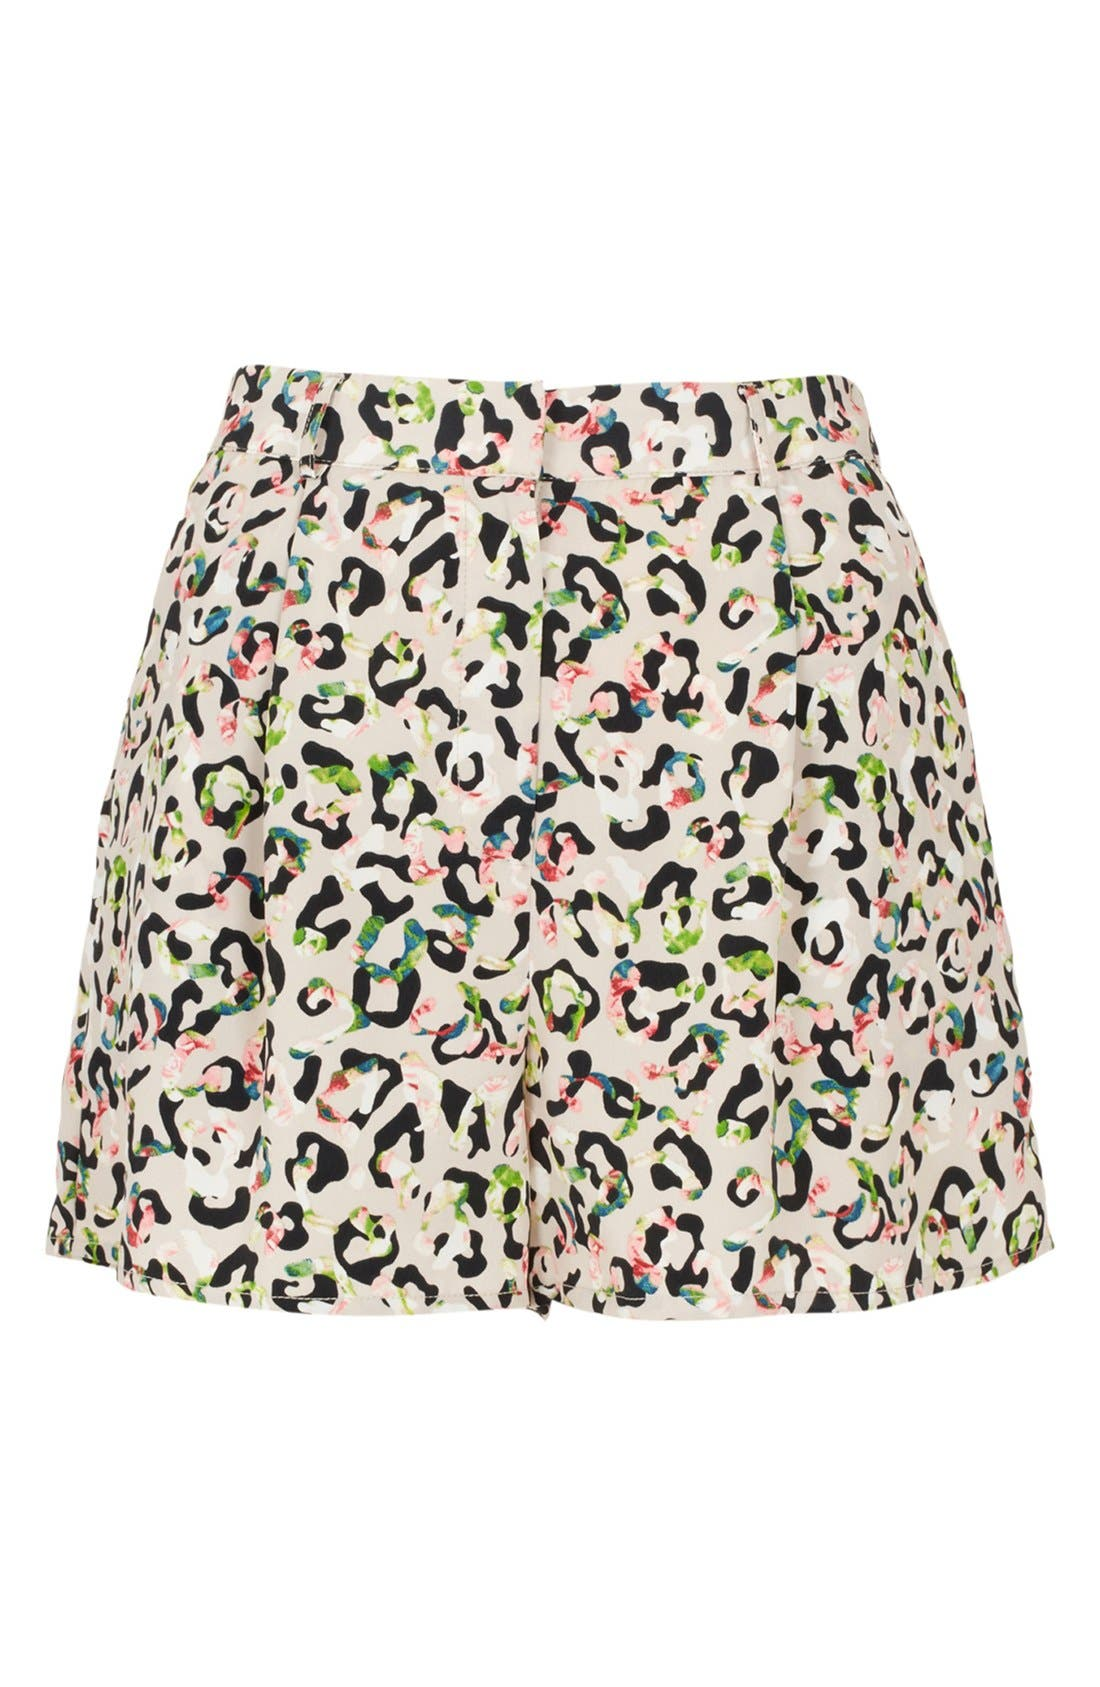 Alternate Image 1 Selected - Topshop Animal Print High Waist Shorts